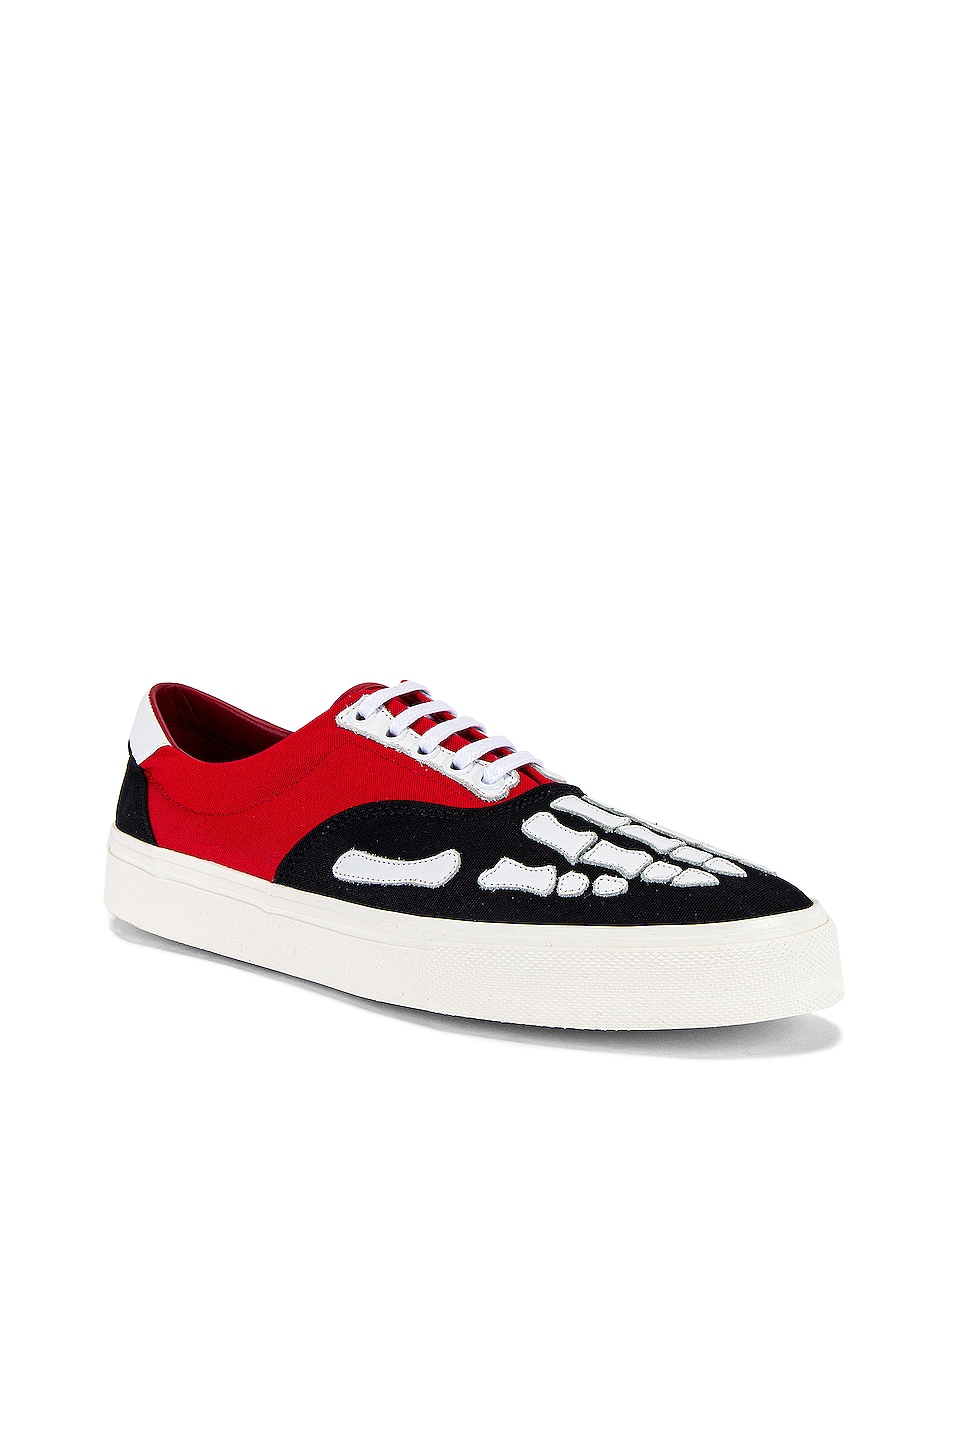 Image 1 of Amiri Skel Toe Lace Up Sneaker in Black & Red & White